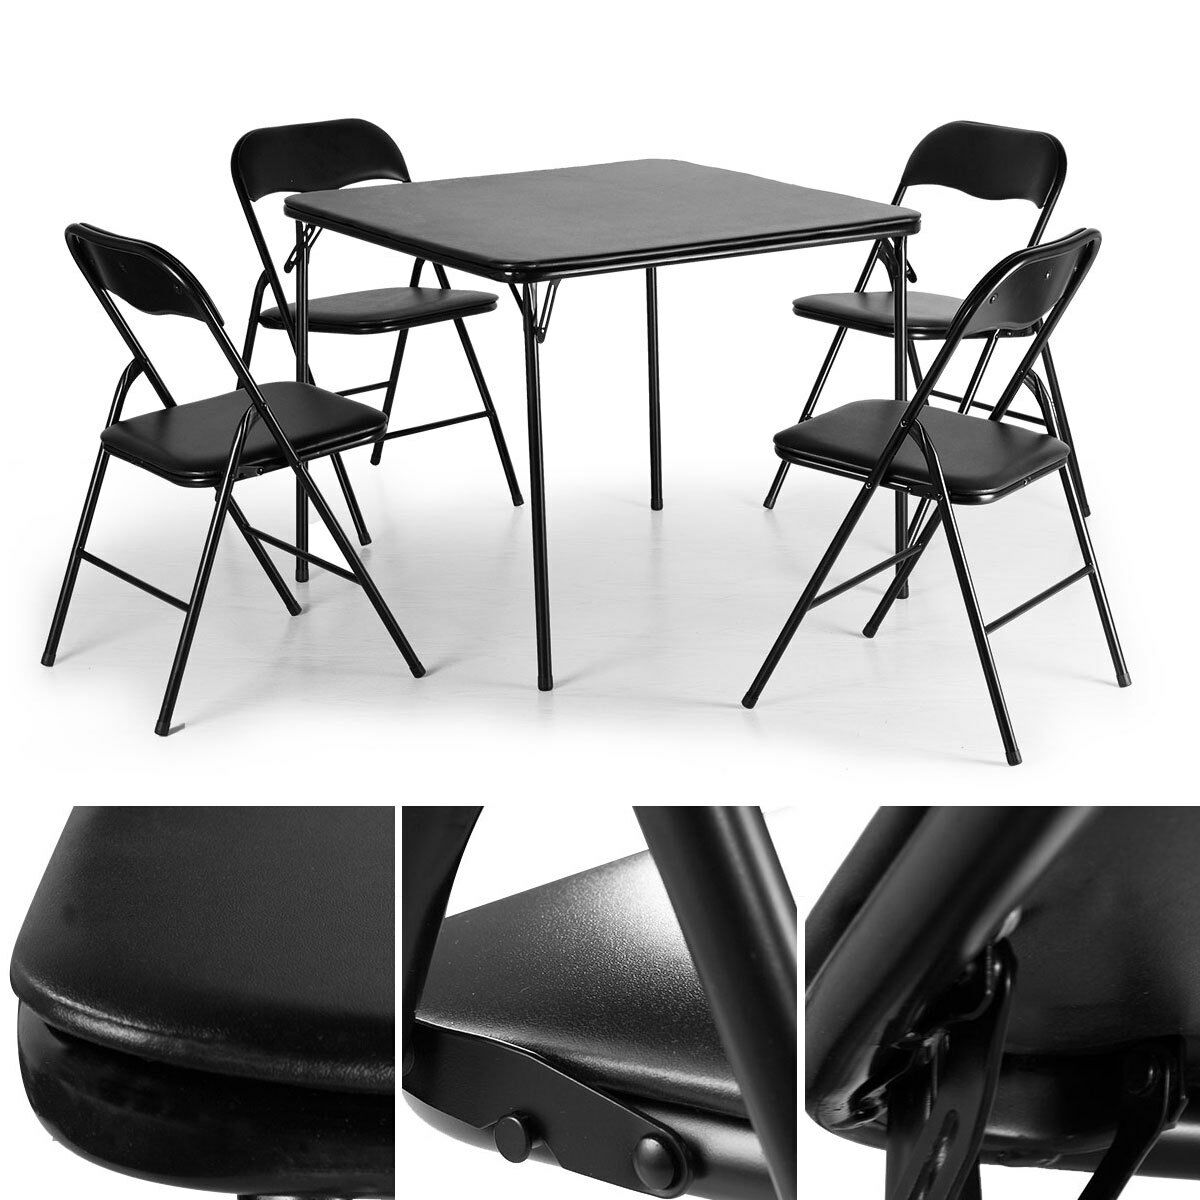 5 PCS Folding Camping Dining Table Set Table and 4 Chairs Bl